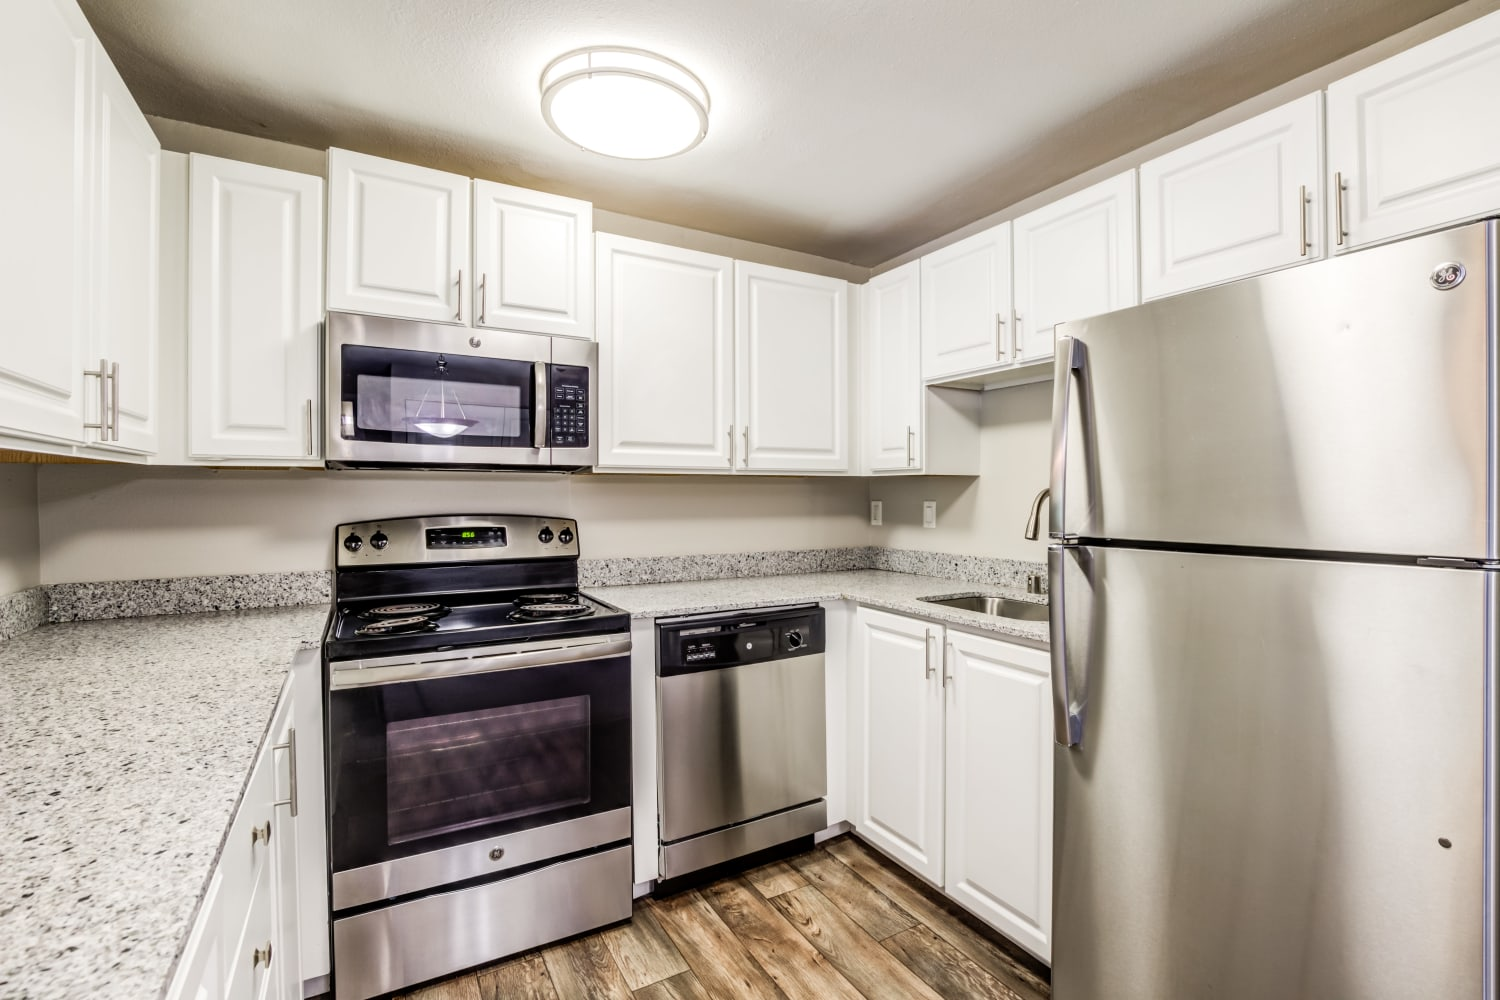 Light and bright colored kitchen featuring stainless steel appliances at Campbell Run Apartments in Woodinville, Washington